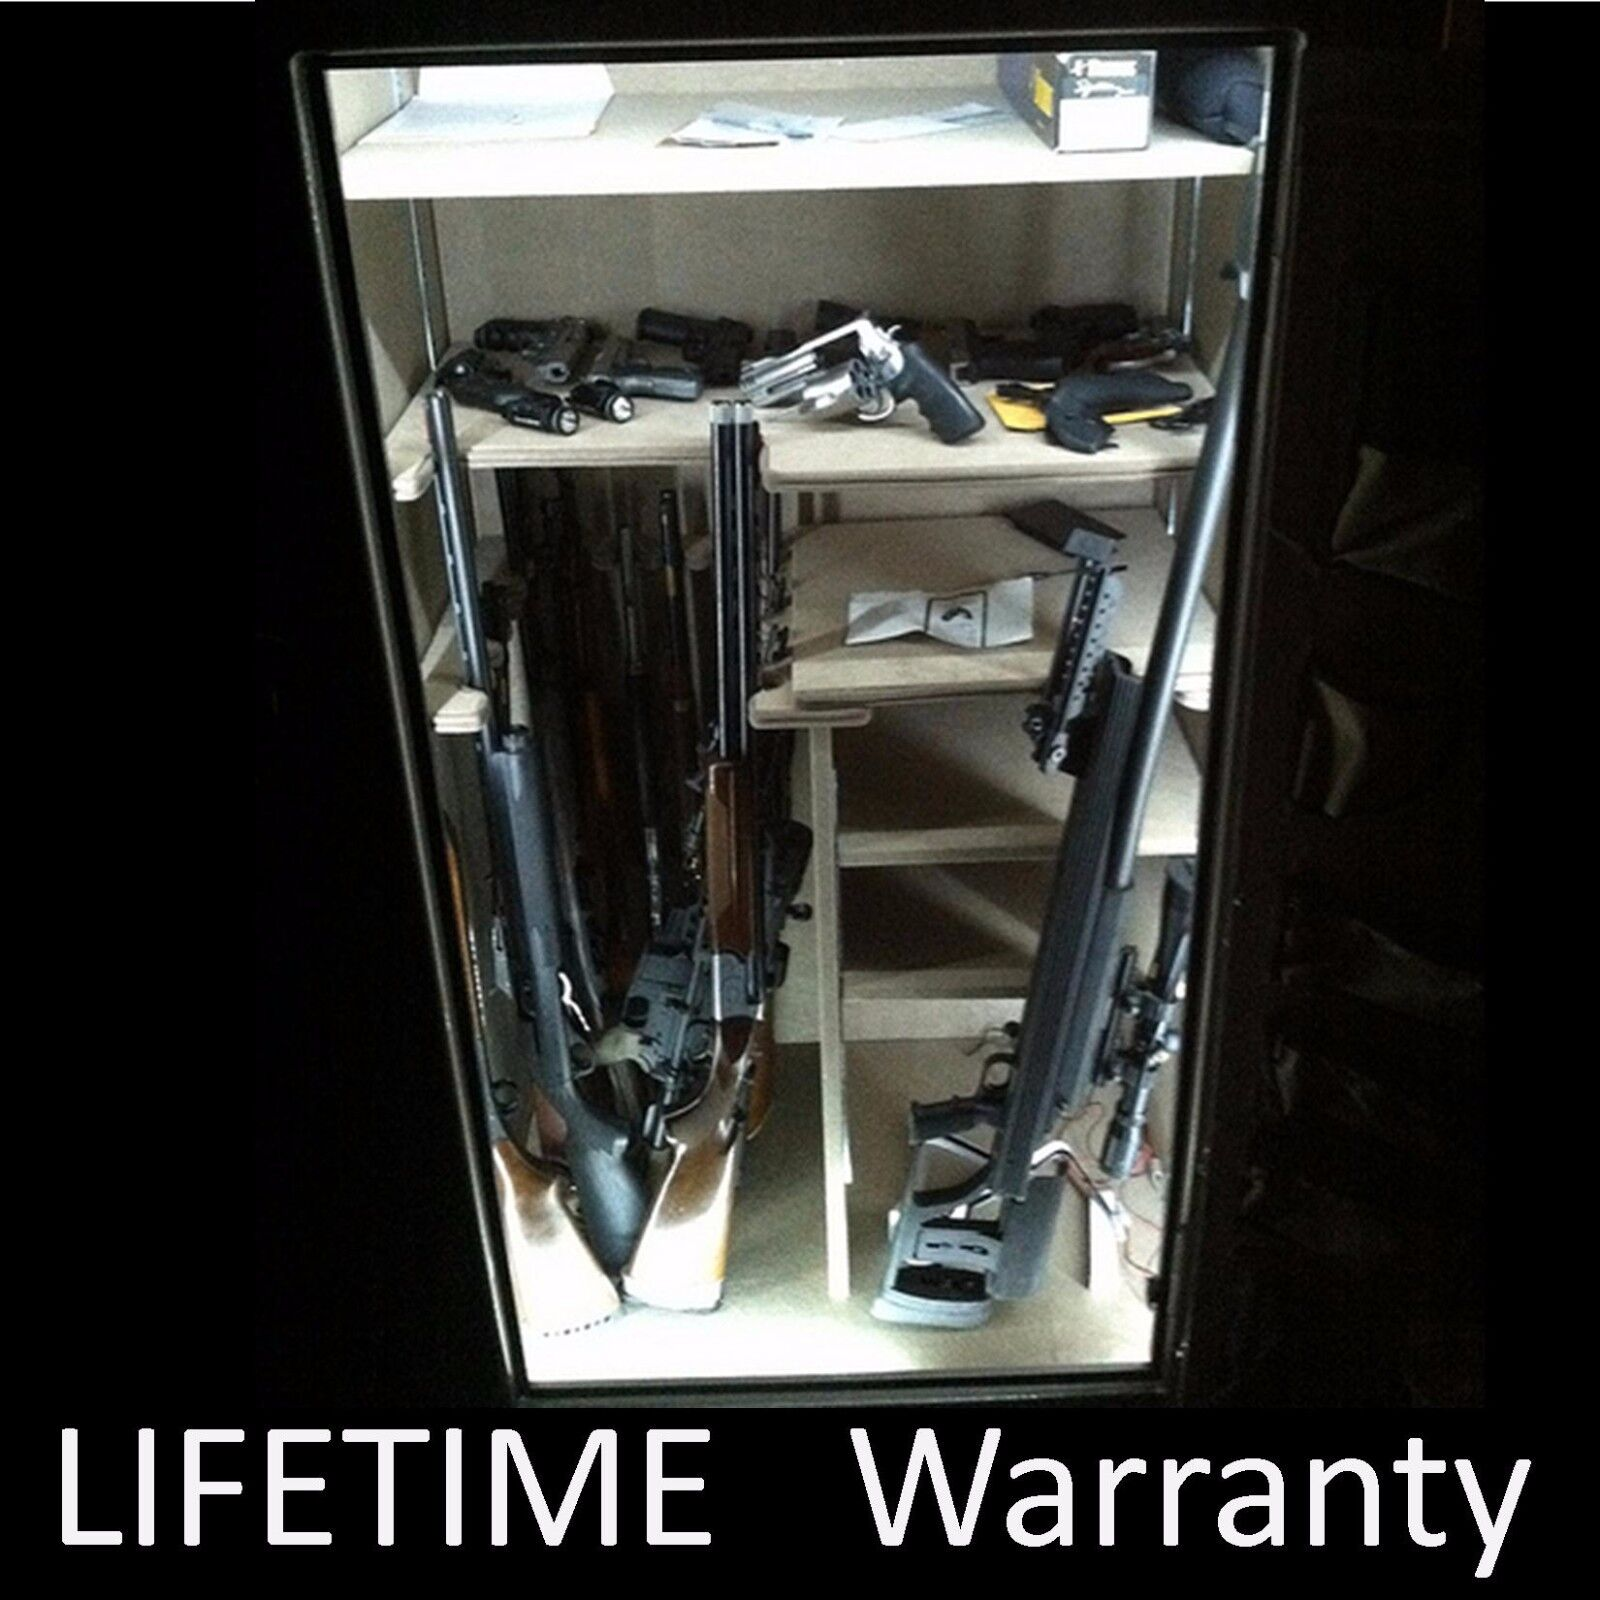 BEST Gift S.W.A.T.- - - - LED gun cabinet   safe light kit - - Remote Control